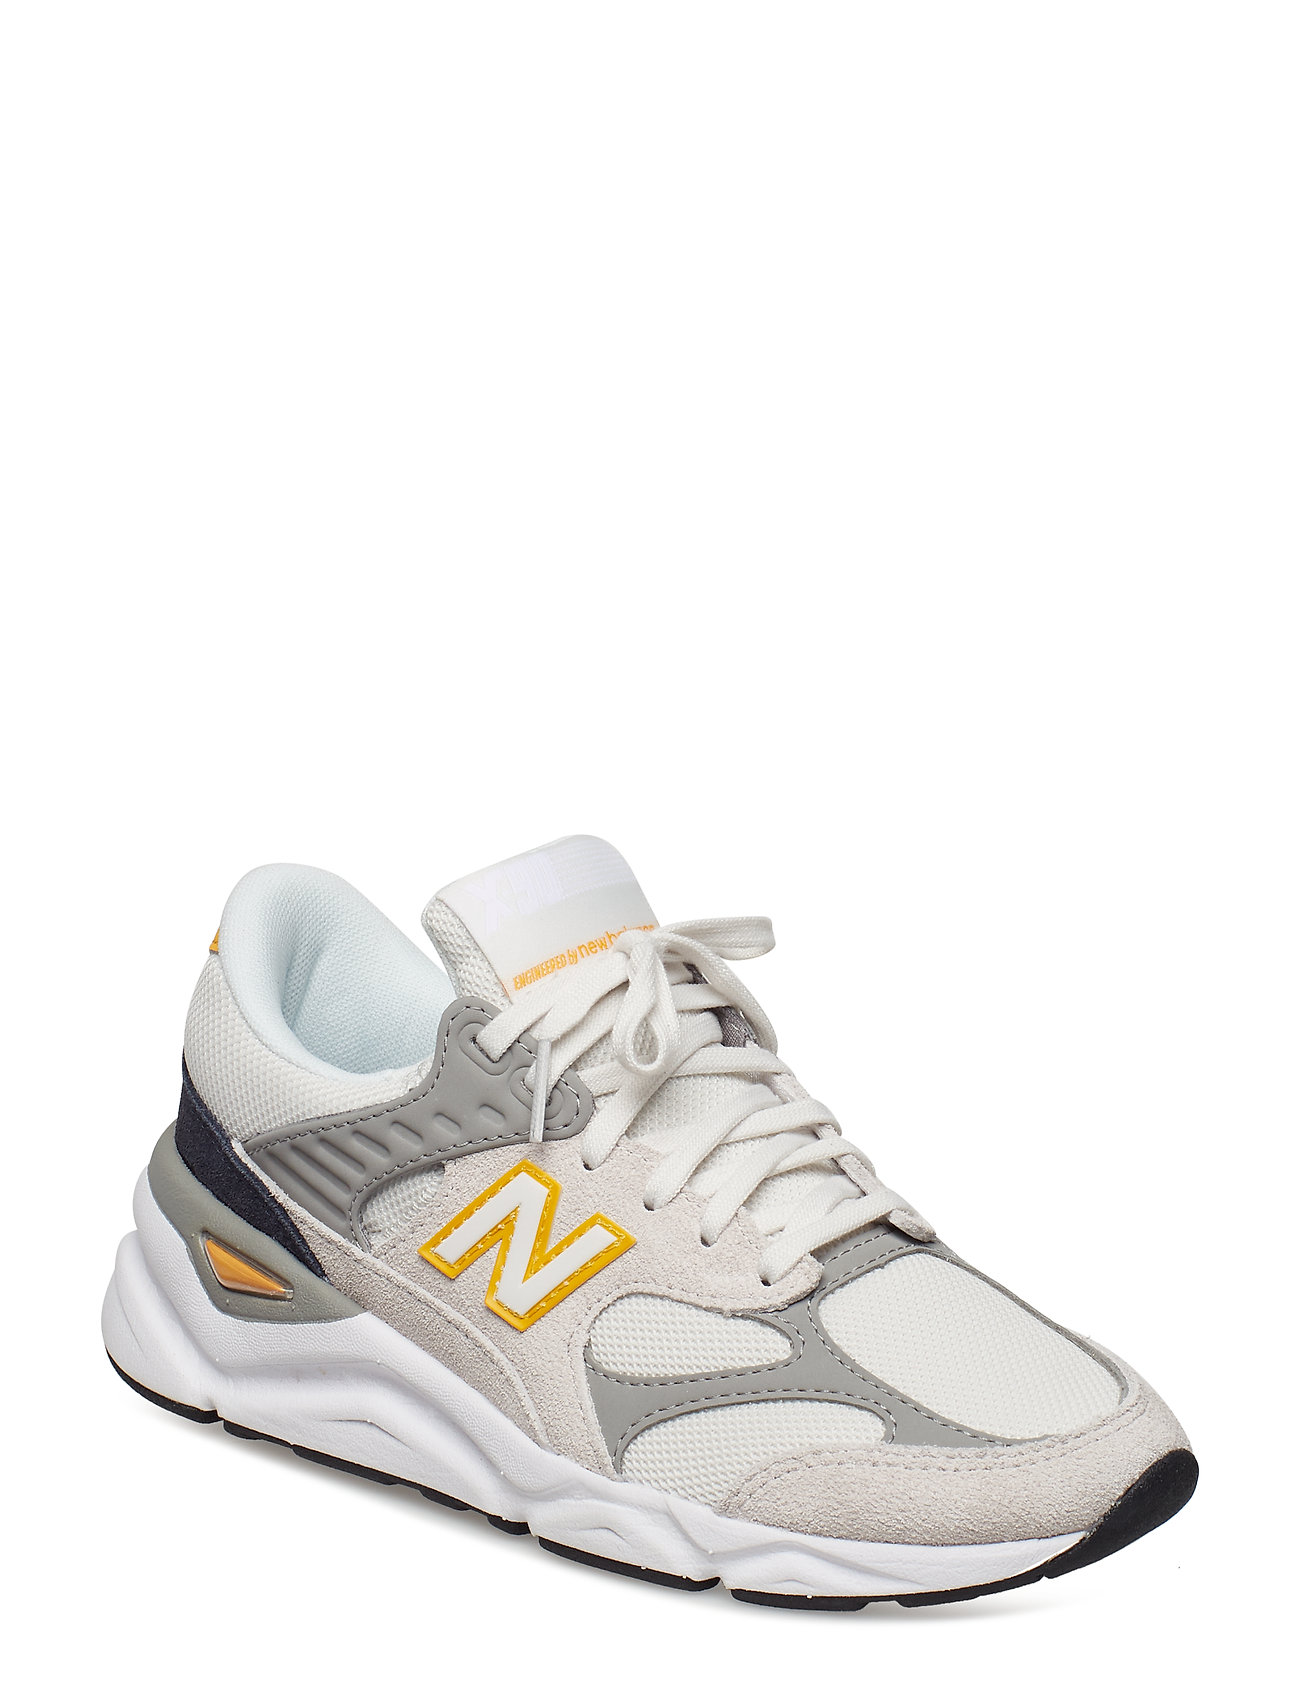 cheapest price authorized site top quality Wsx90 Low-top Sneakers Hvid NEW BALANCE